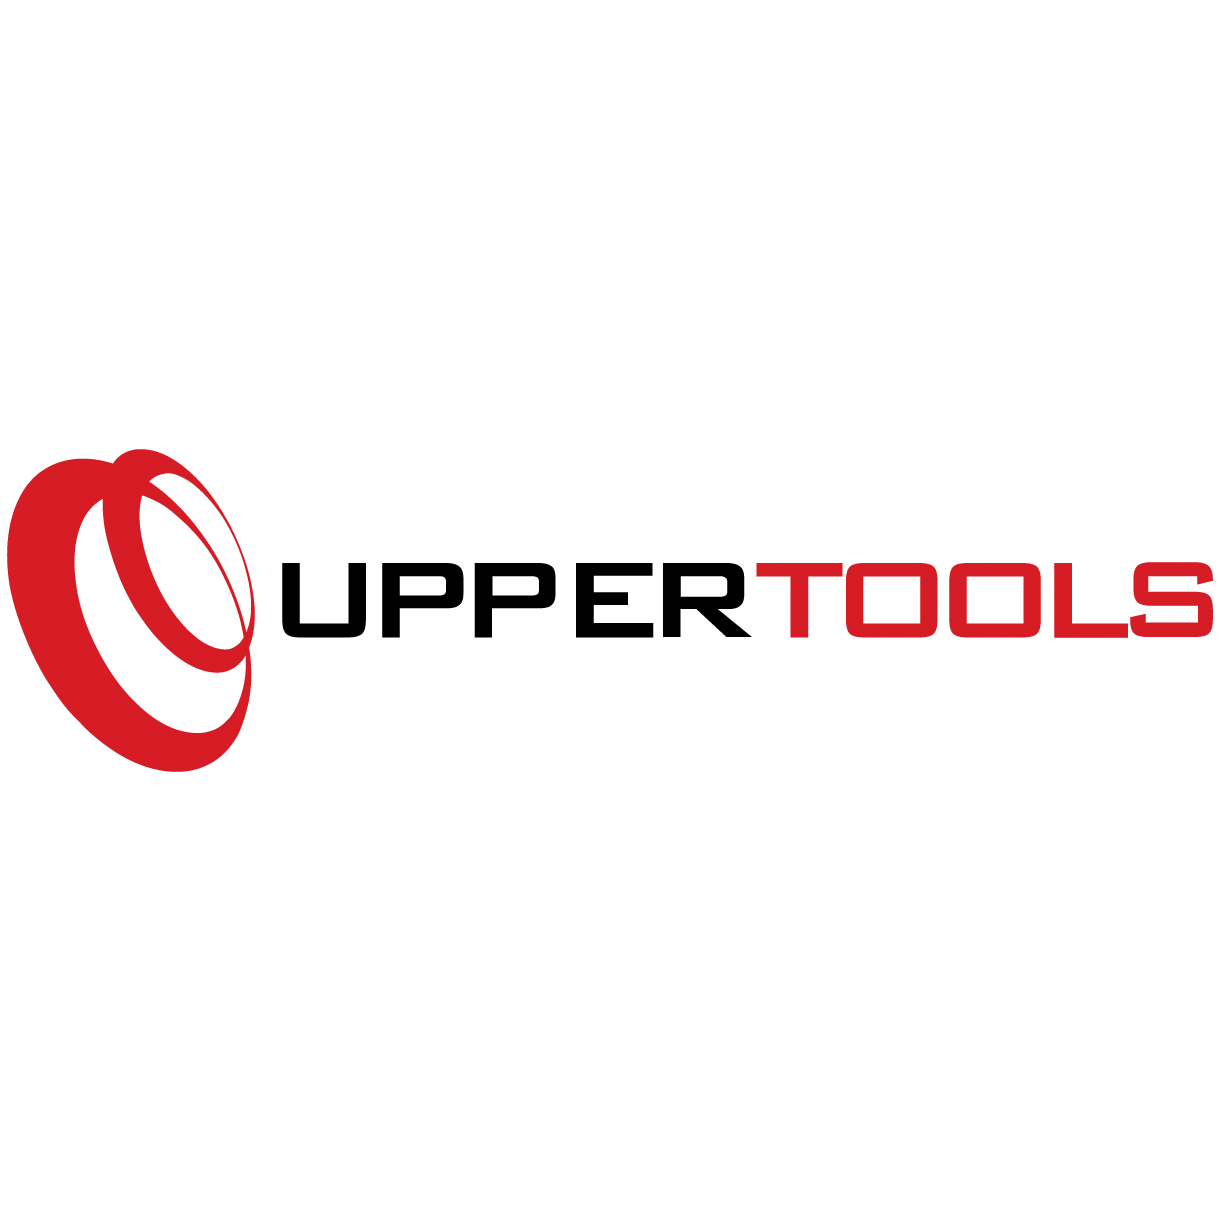 Uppertools